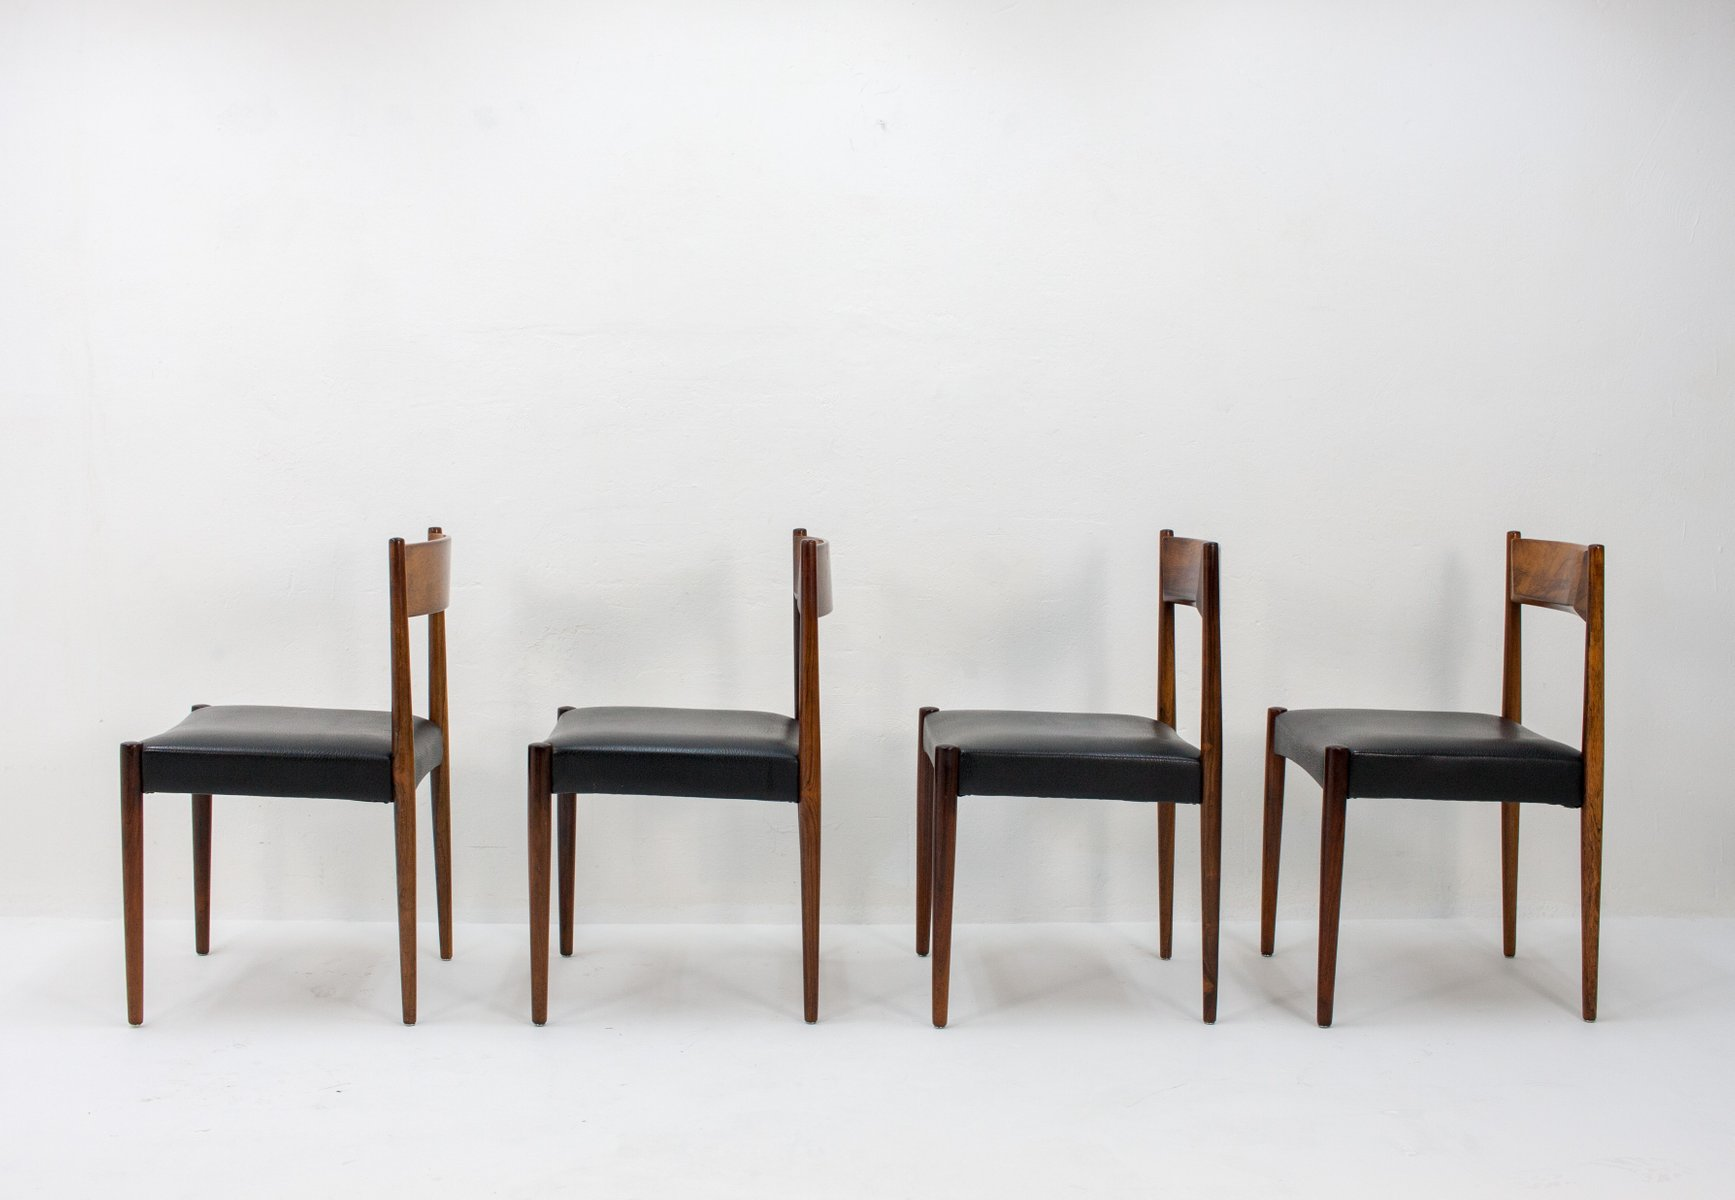 Black Leather Dining Chairs Rosewood And Black Leather Dining Chairs From Lübke 1960s Set Of 4